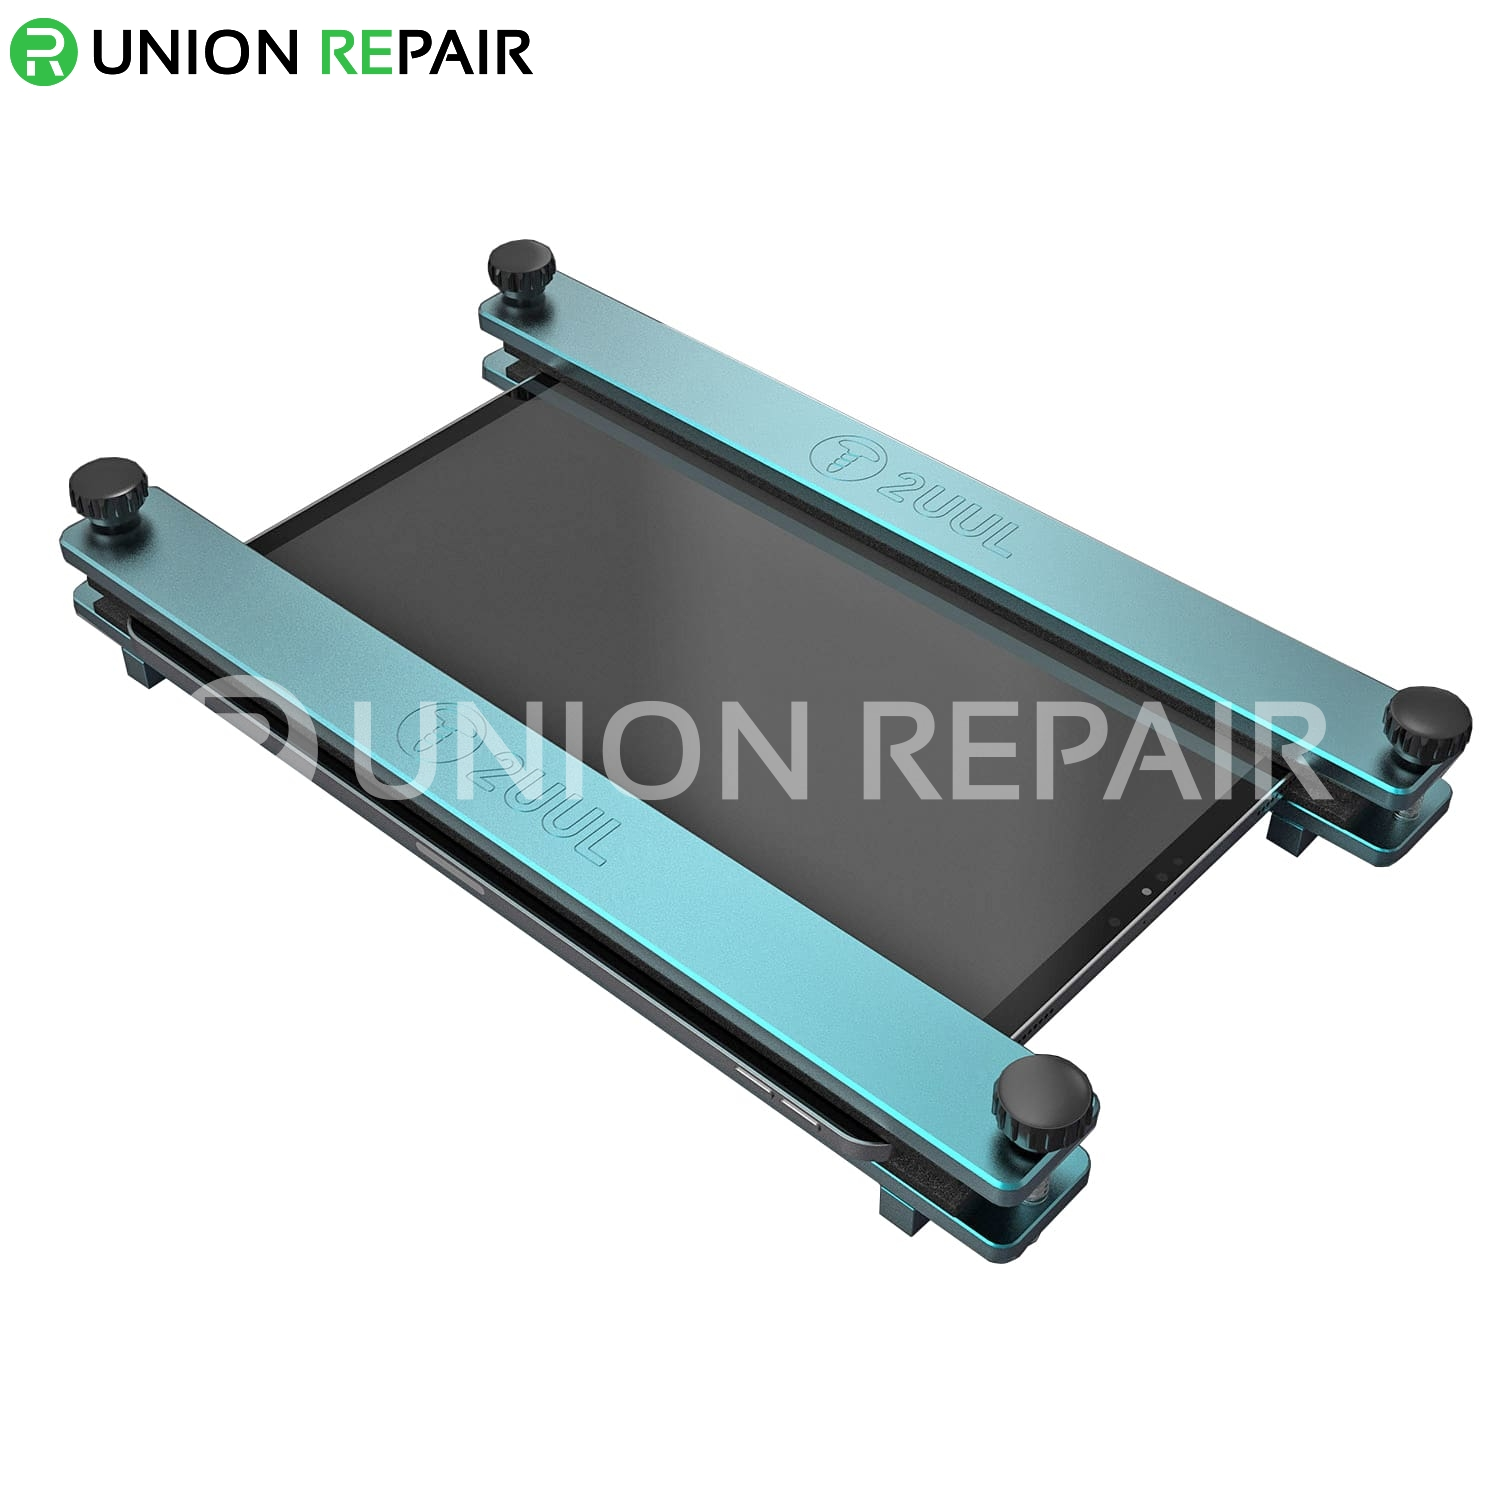 2UUL 3rd Gen Oversize Press Clamp for Phone Pad Glass Replacement (2pcs/pack)